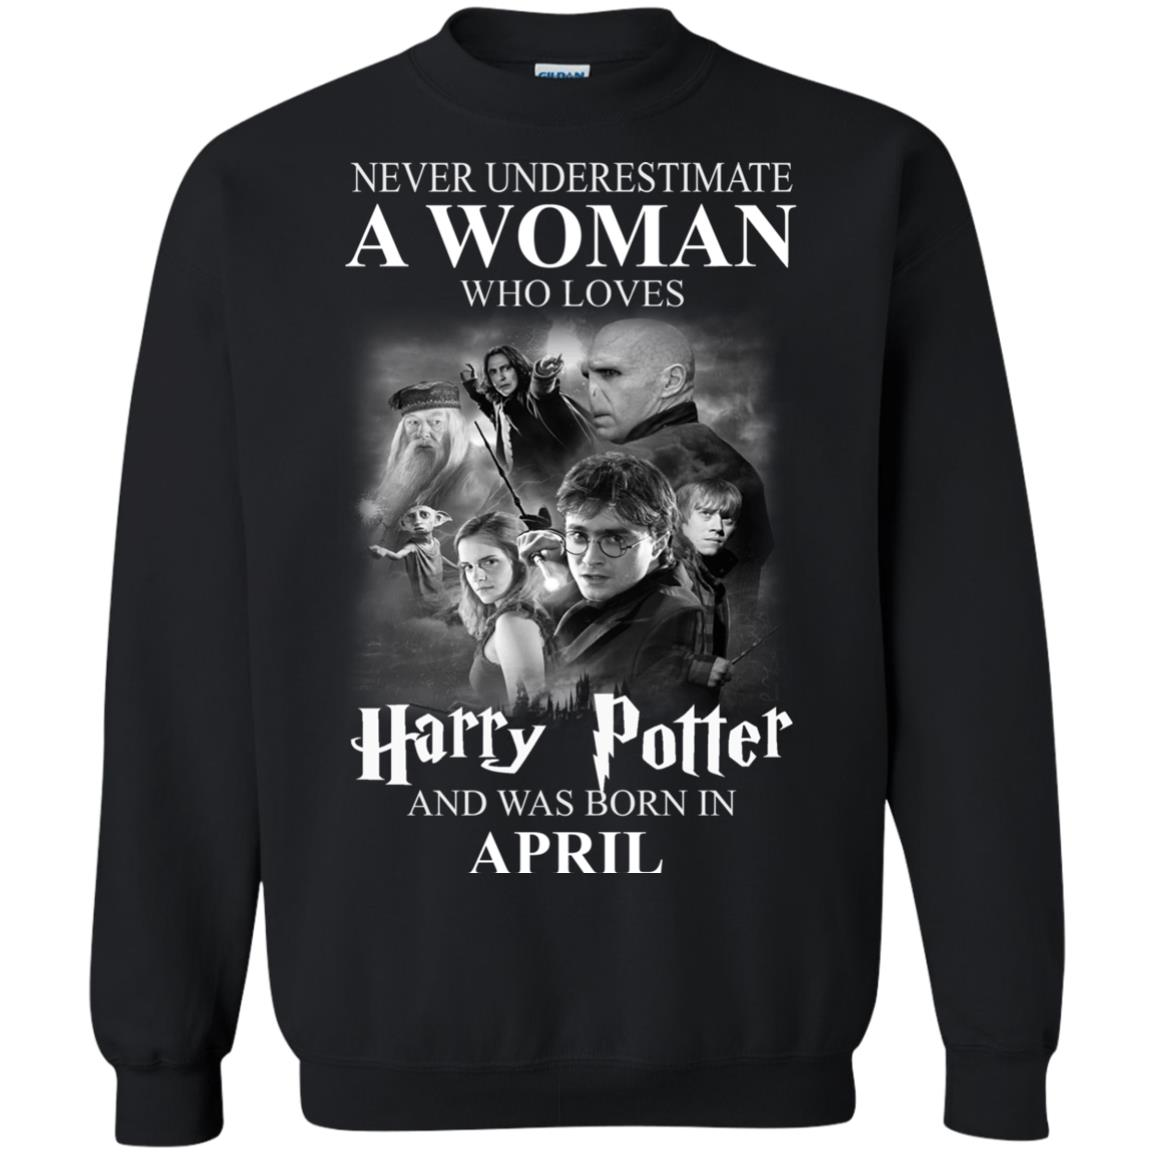 image 1128 - Never underestimate A woman who watches Harry Potter and was born in April shirt